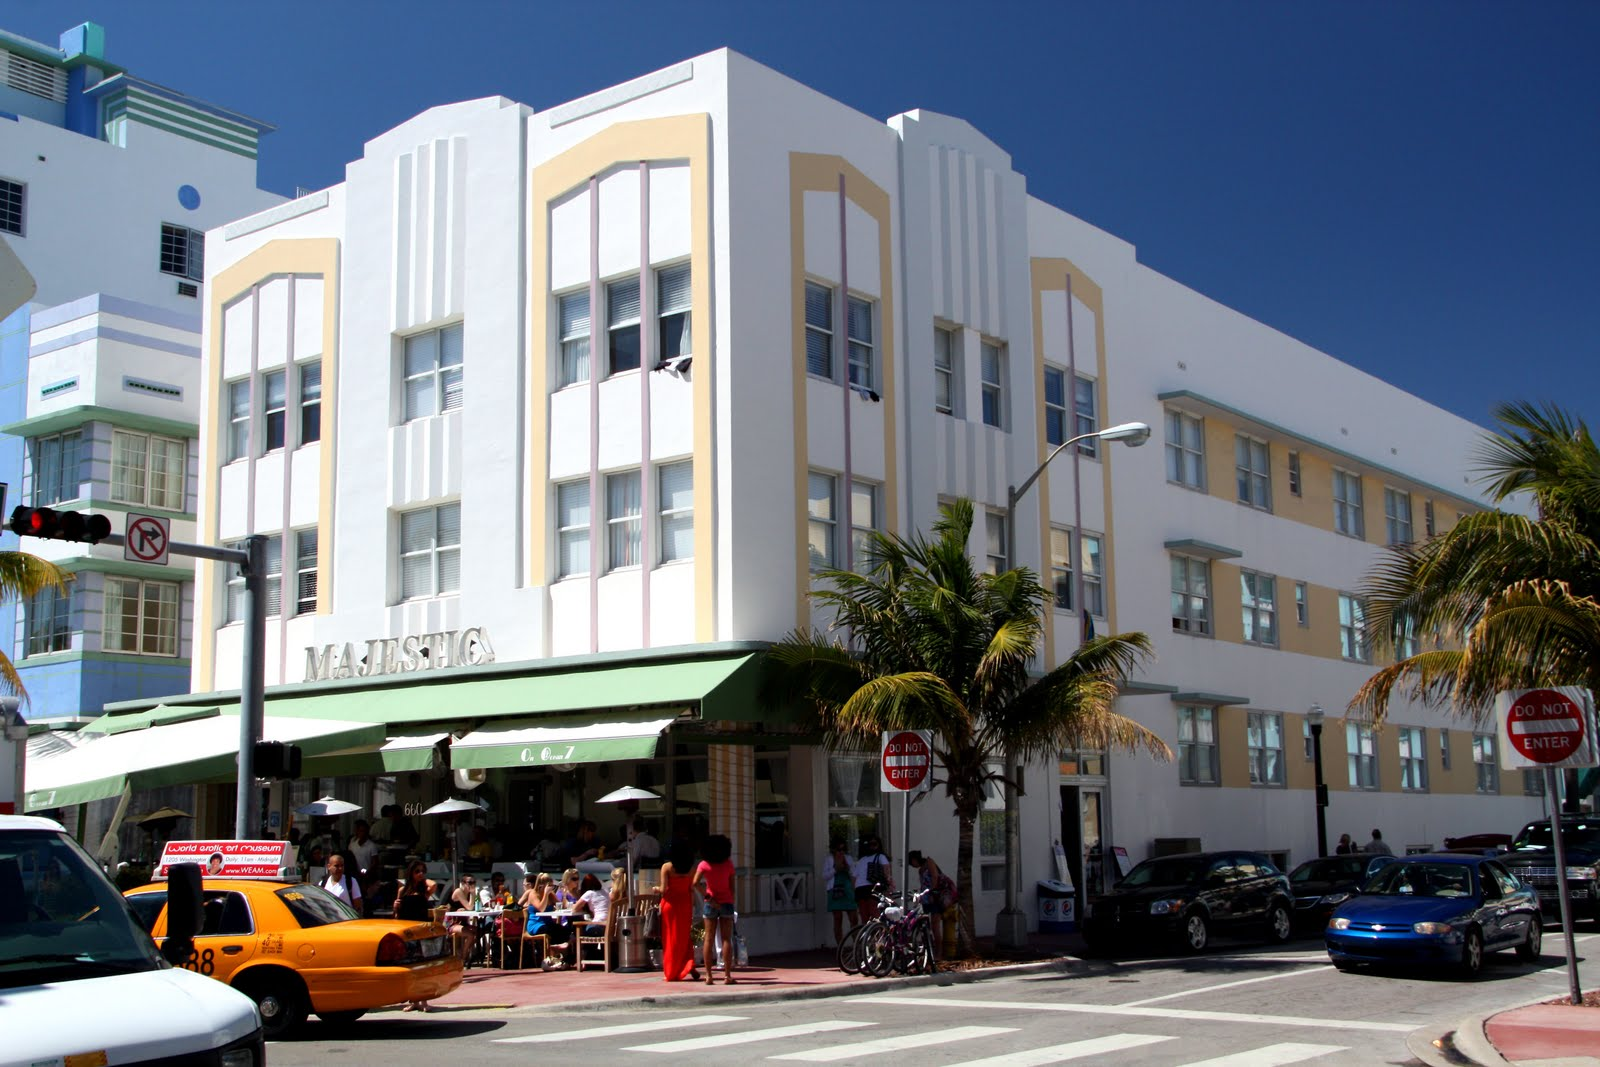 Majestic Hotel South Beach Miami The Best Beaches In World